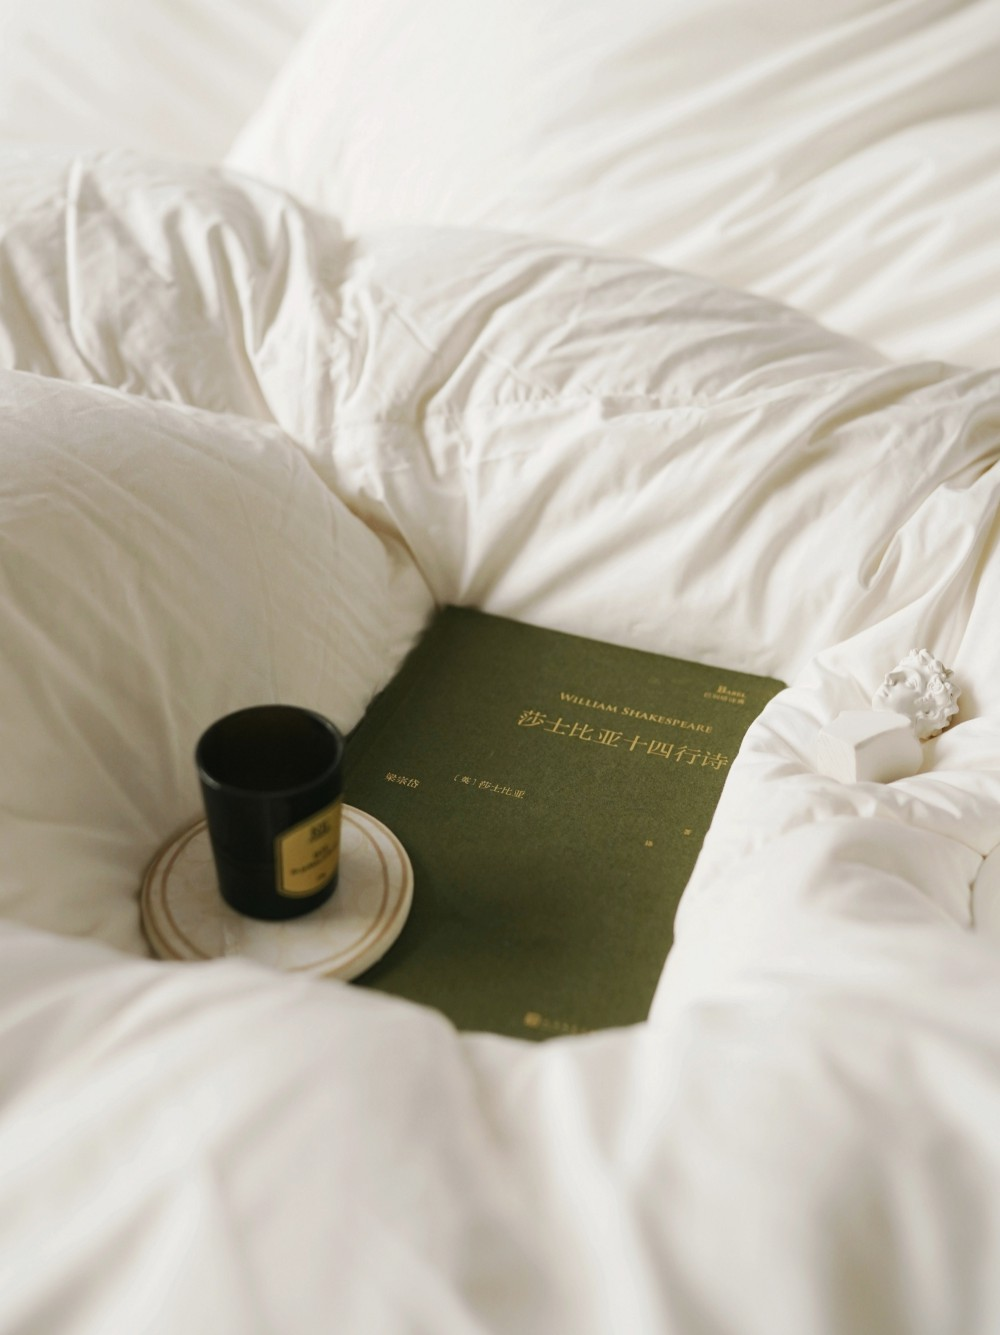 An olive green book of Shakespeare nestled in a white duvet with a cup and saucer